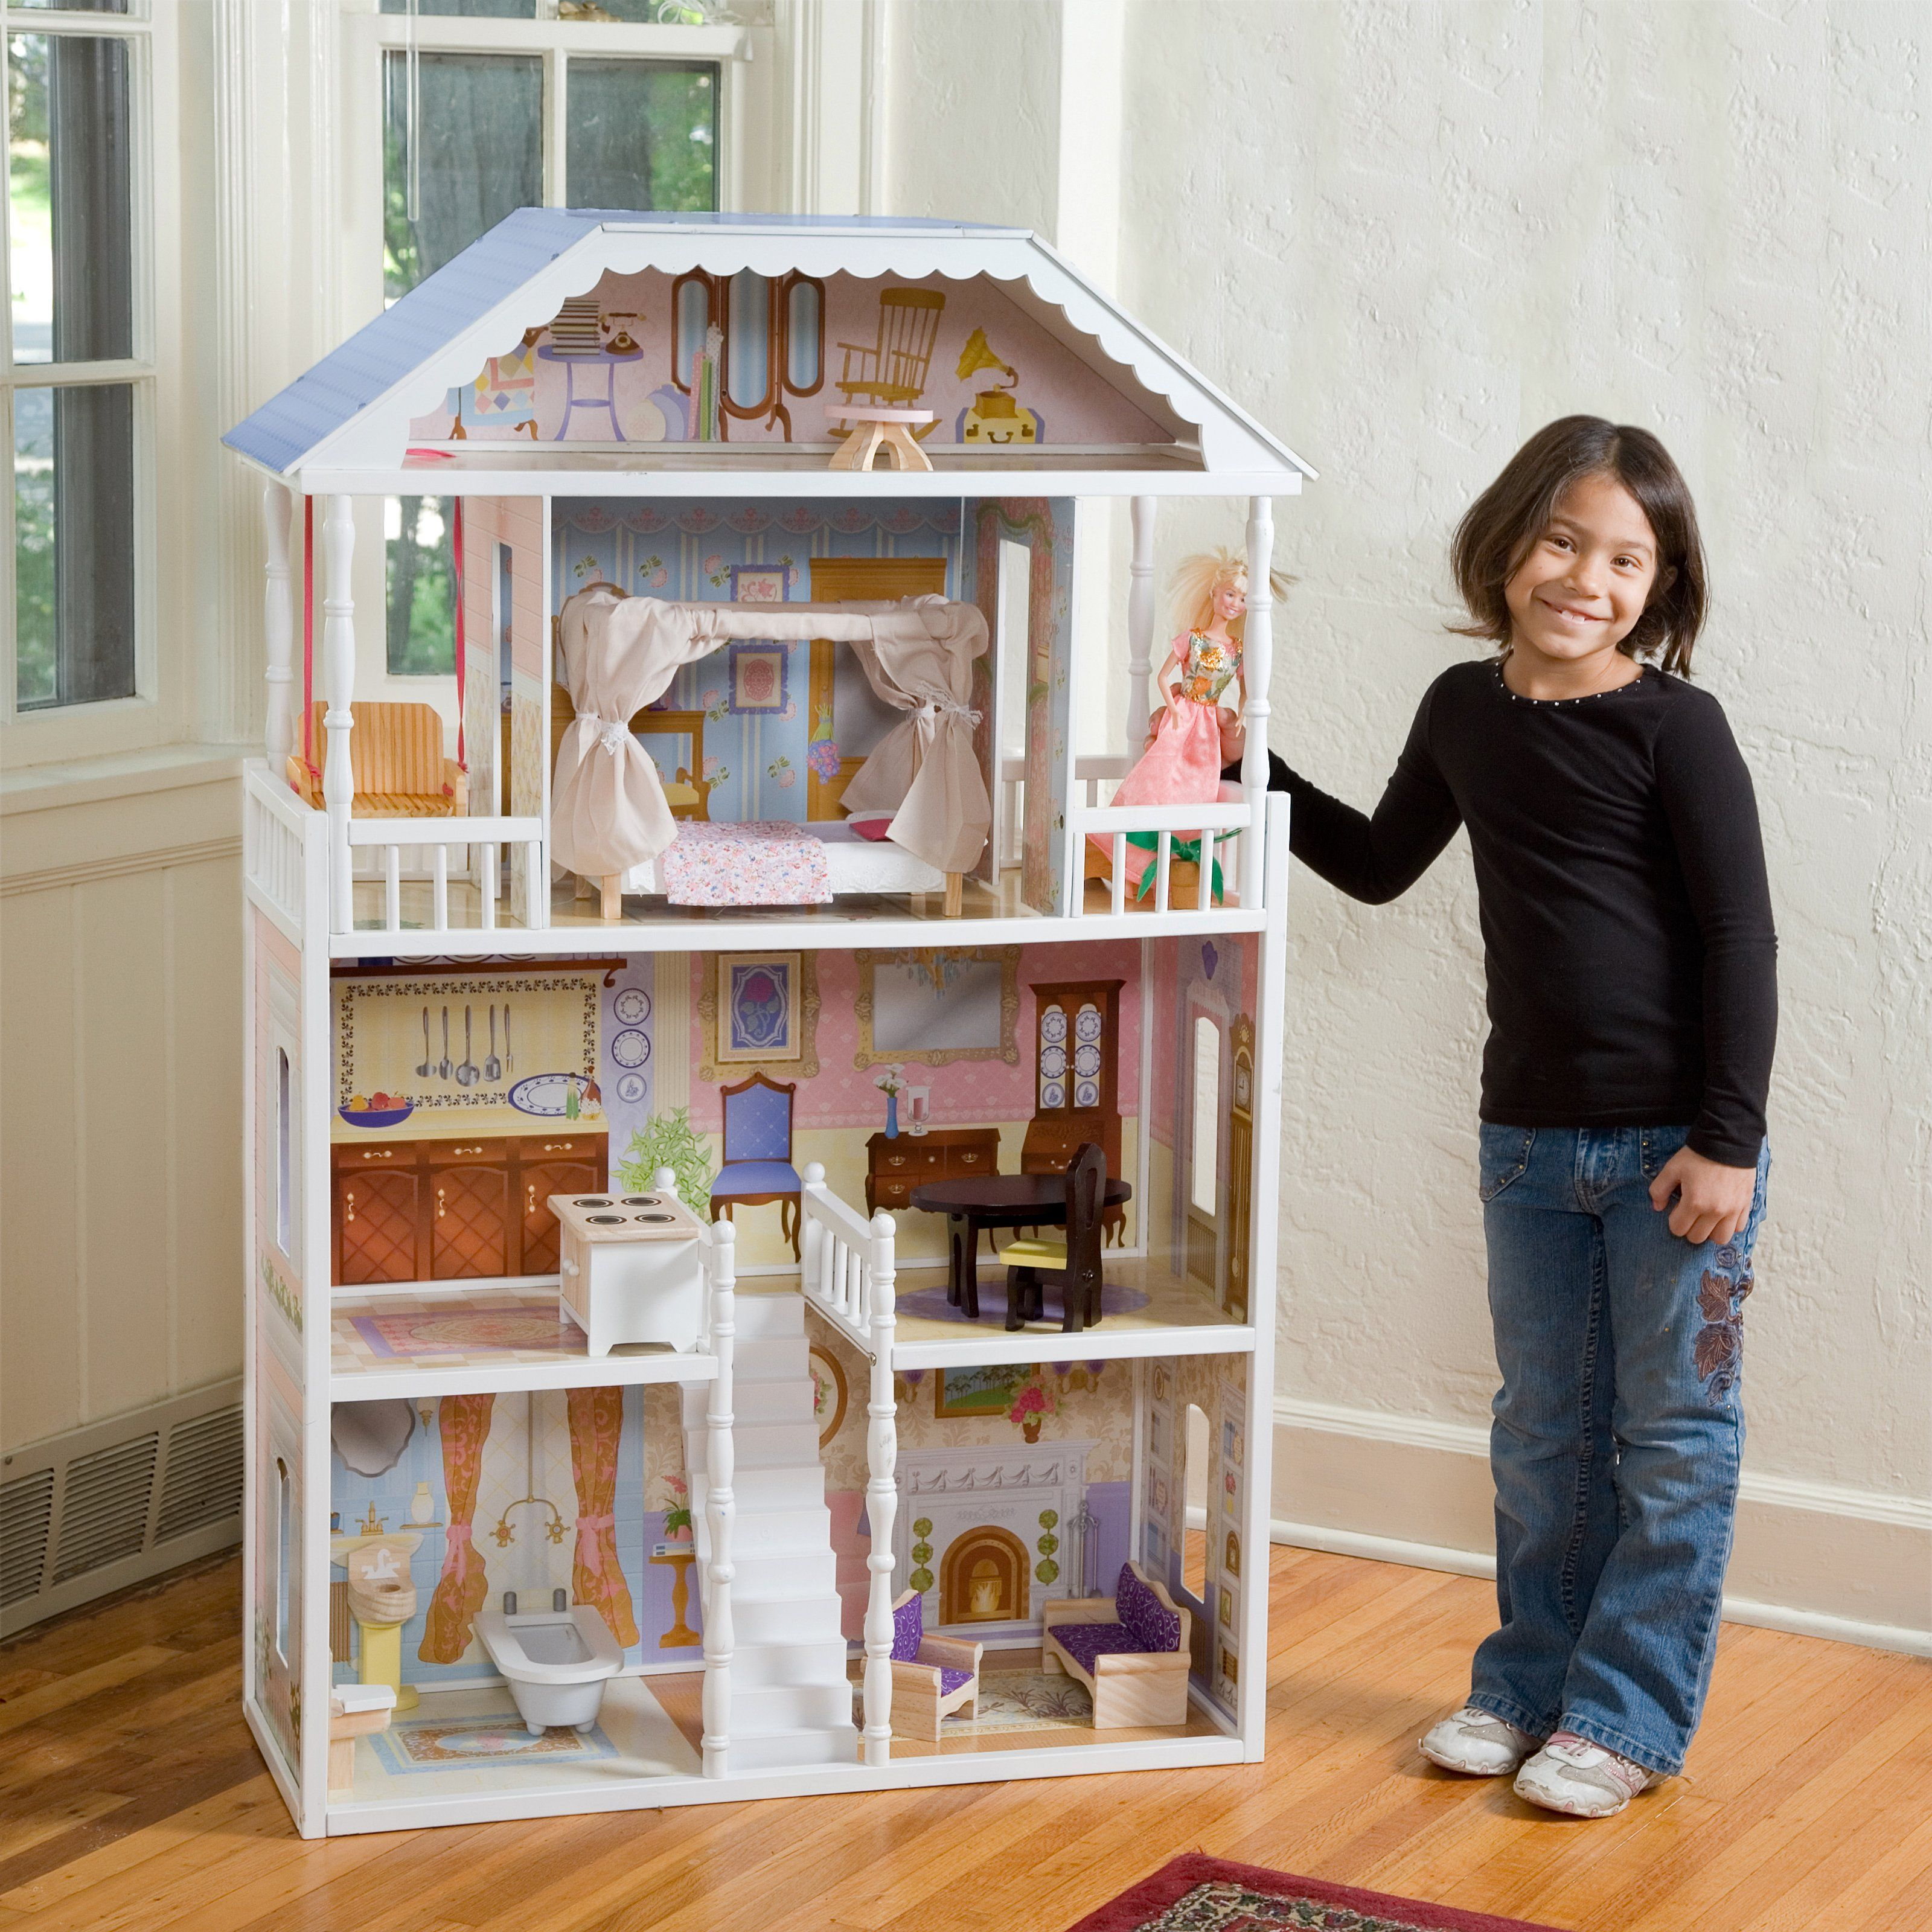 Dollhouse - Dollhouse Is A Toy Home, Made In Miniature